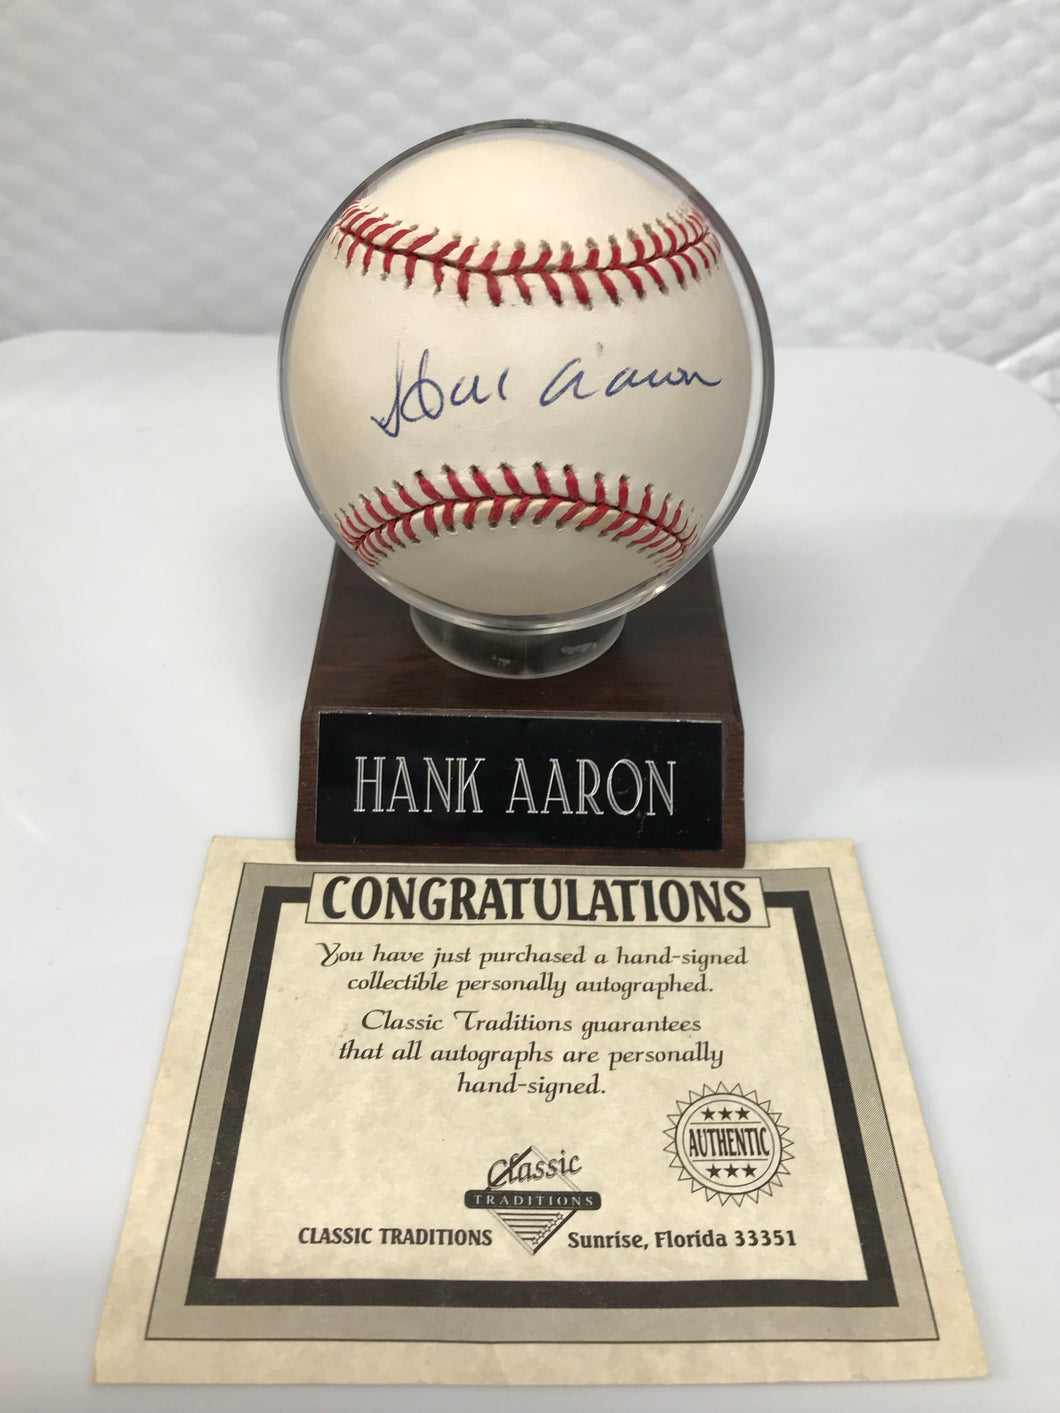 Hank Aaron Signed Ball